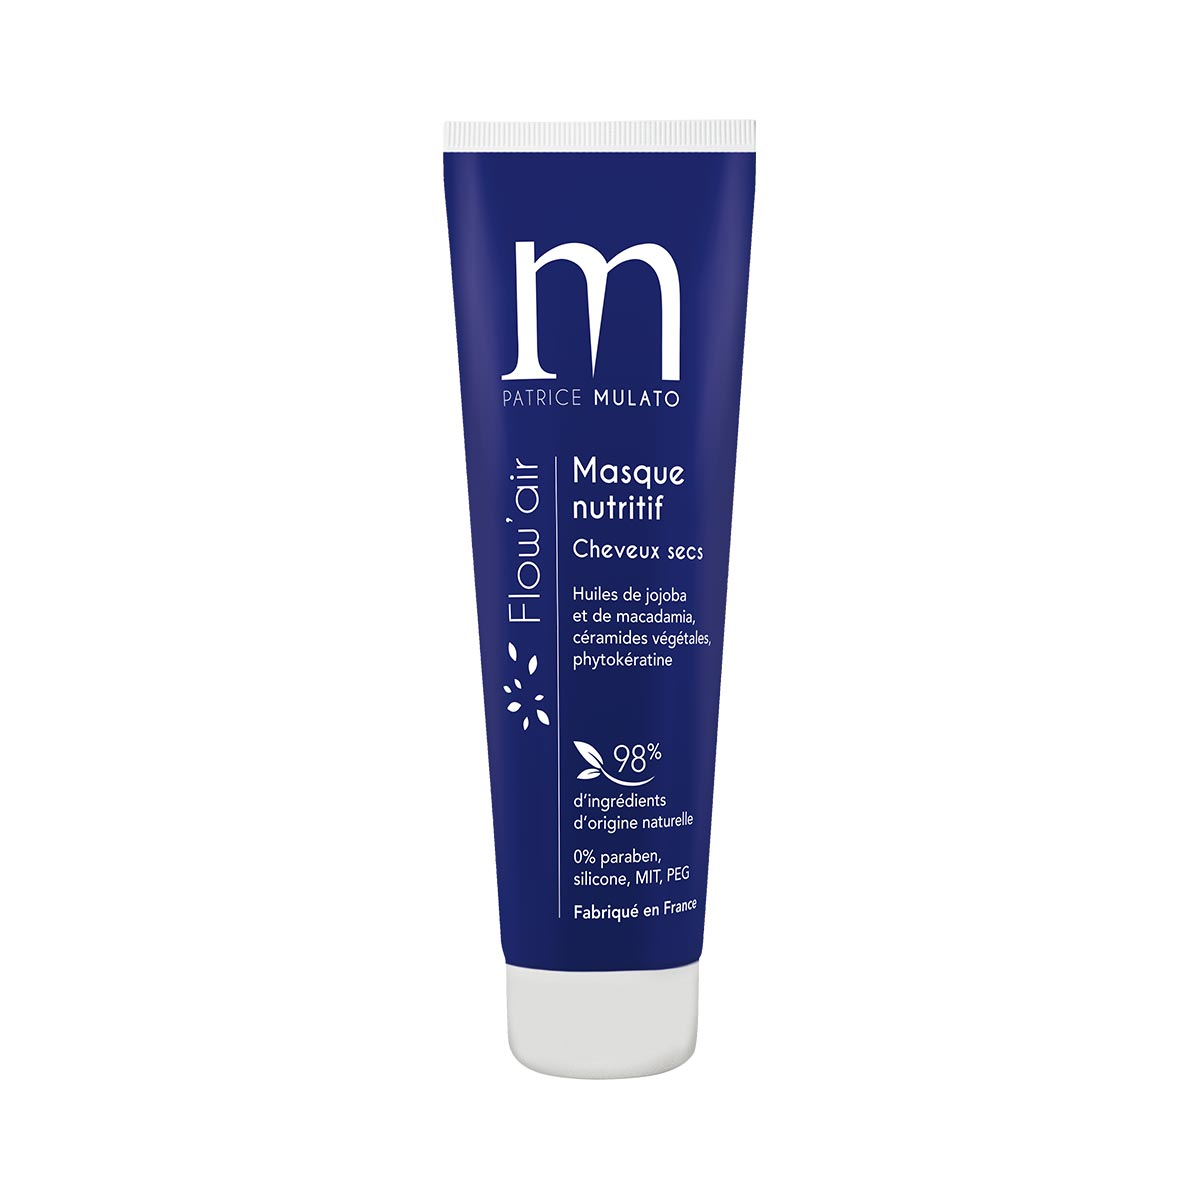 Masque Nutritif Cheveux Secs Flow Air Mulato 30ml